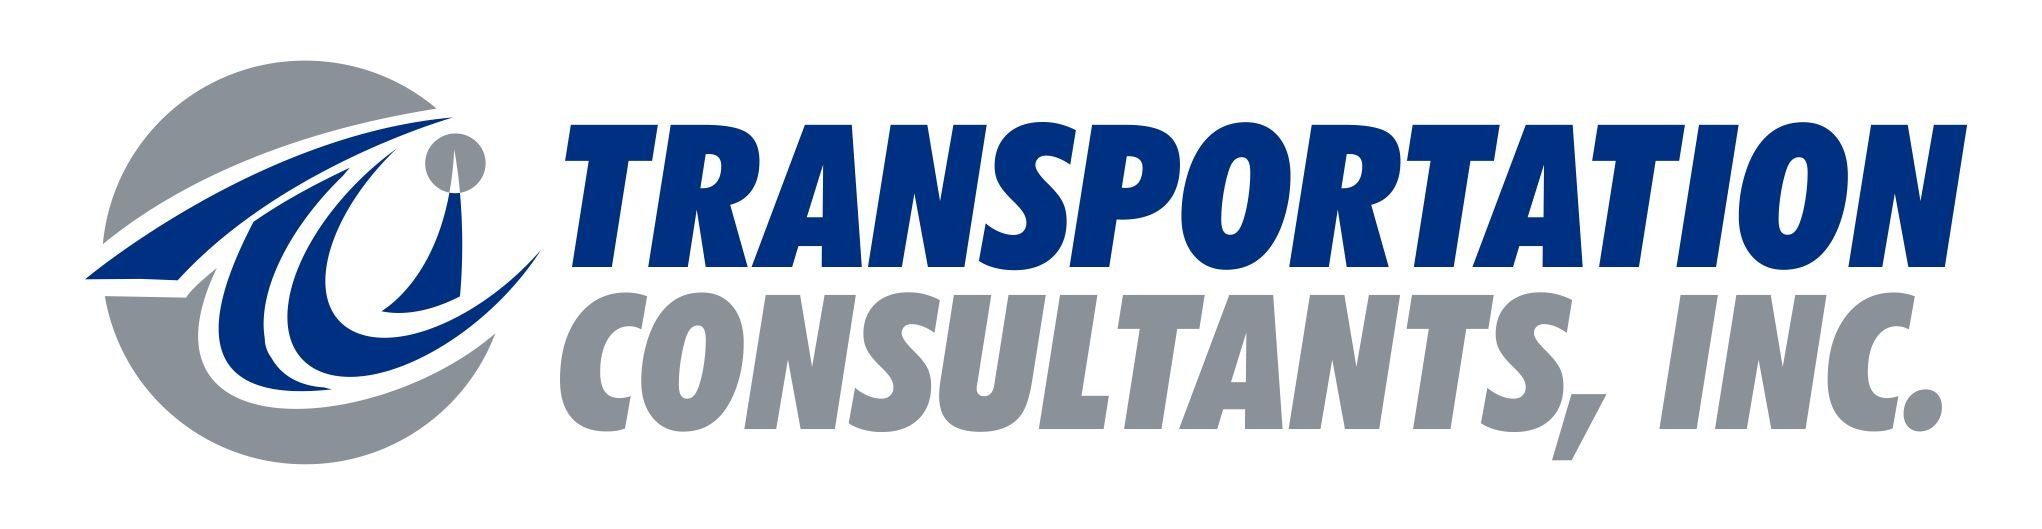 Transportation Consultants, Inc.